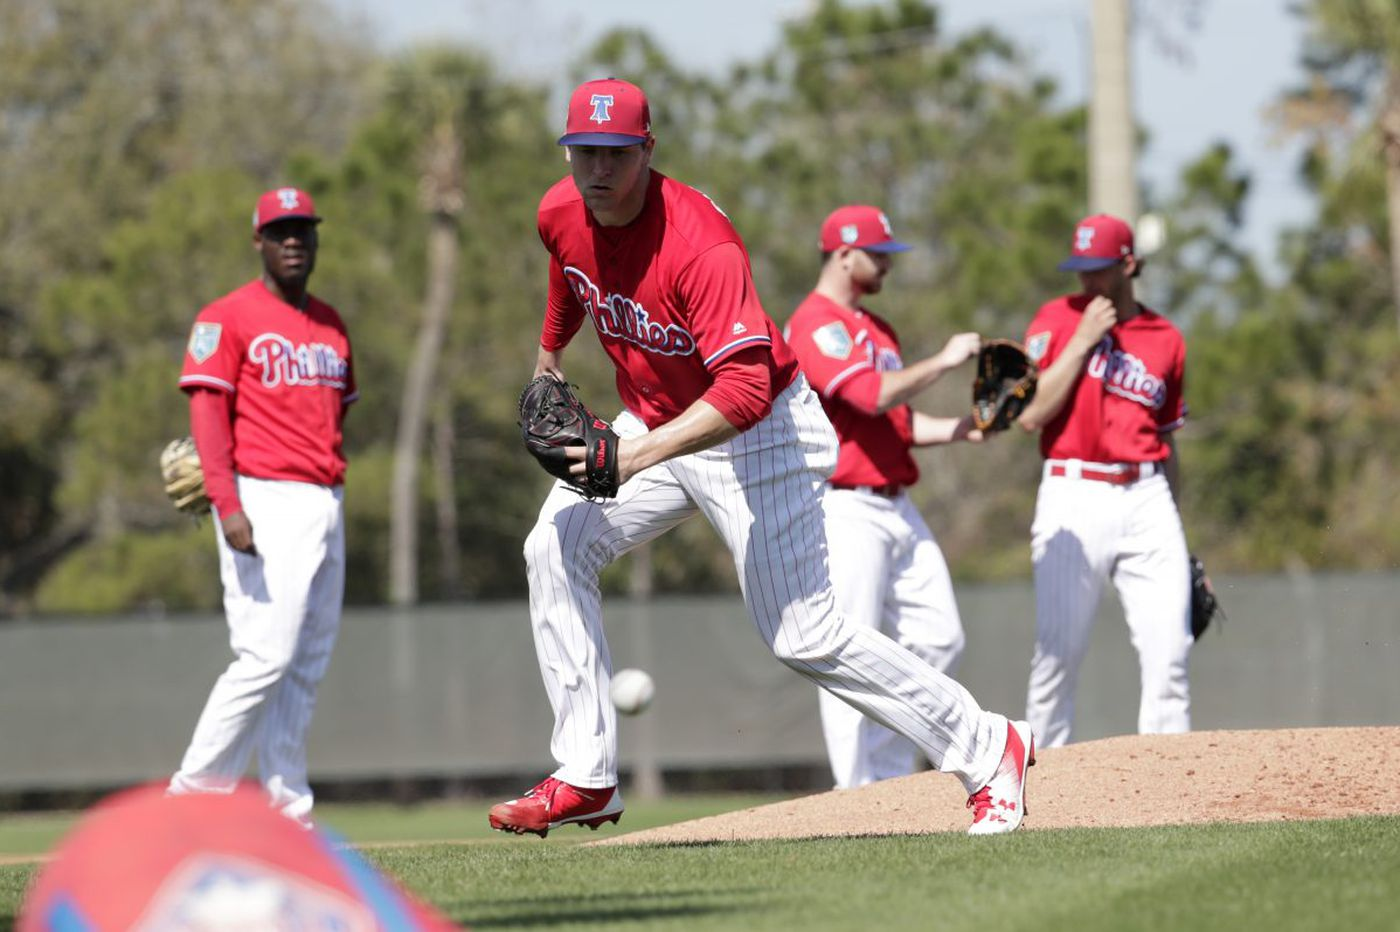 Jerad Eickhoff to start for Phillies in spring opener